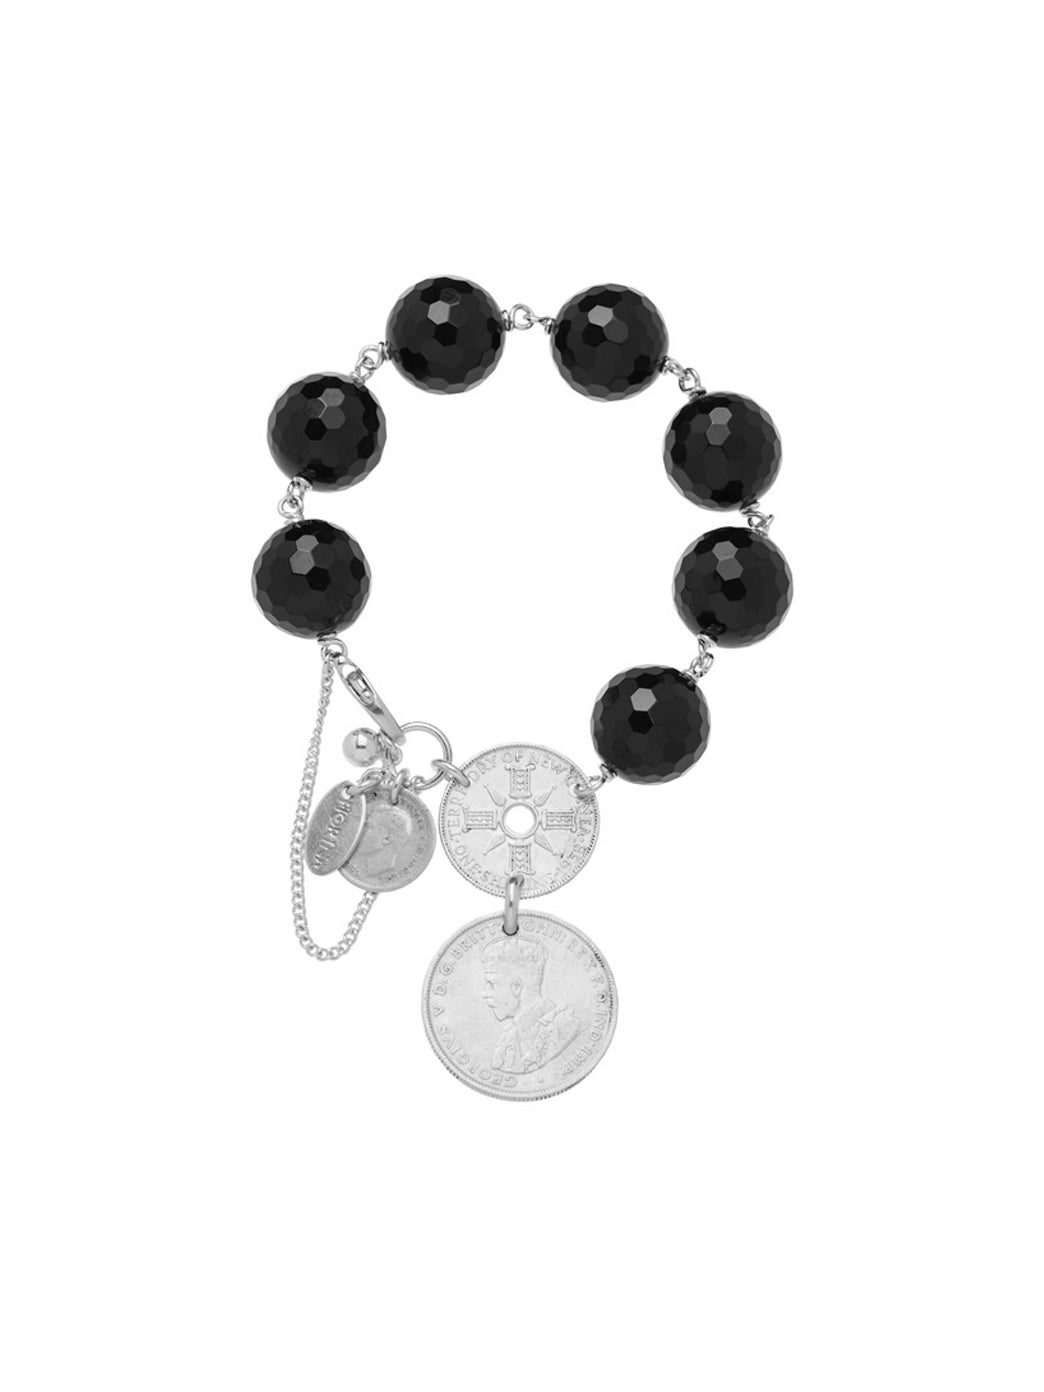 Fiorina Jewellery Double Coin Bracelet Black Onyx